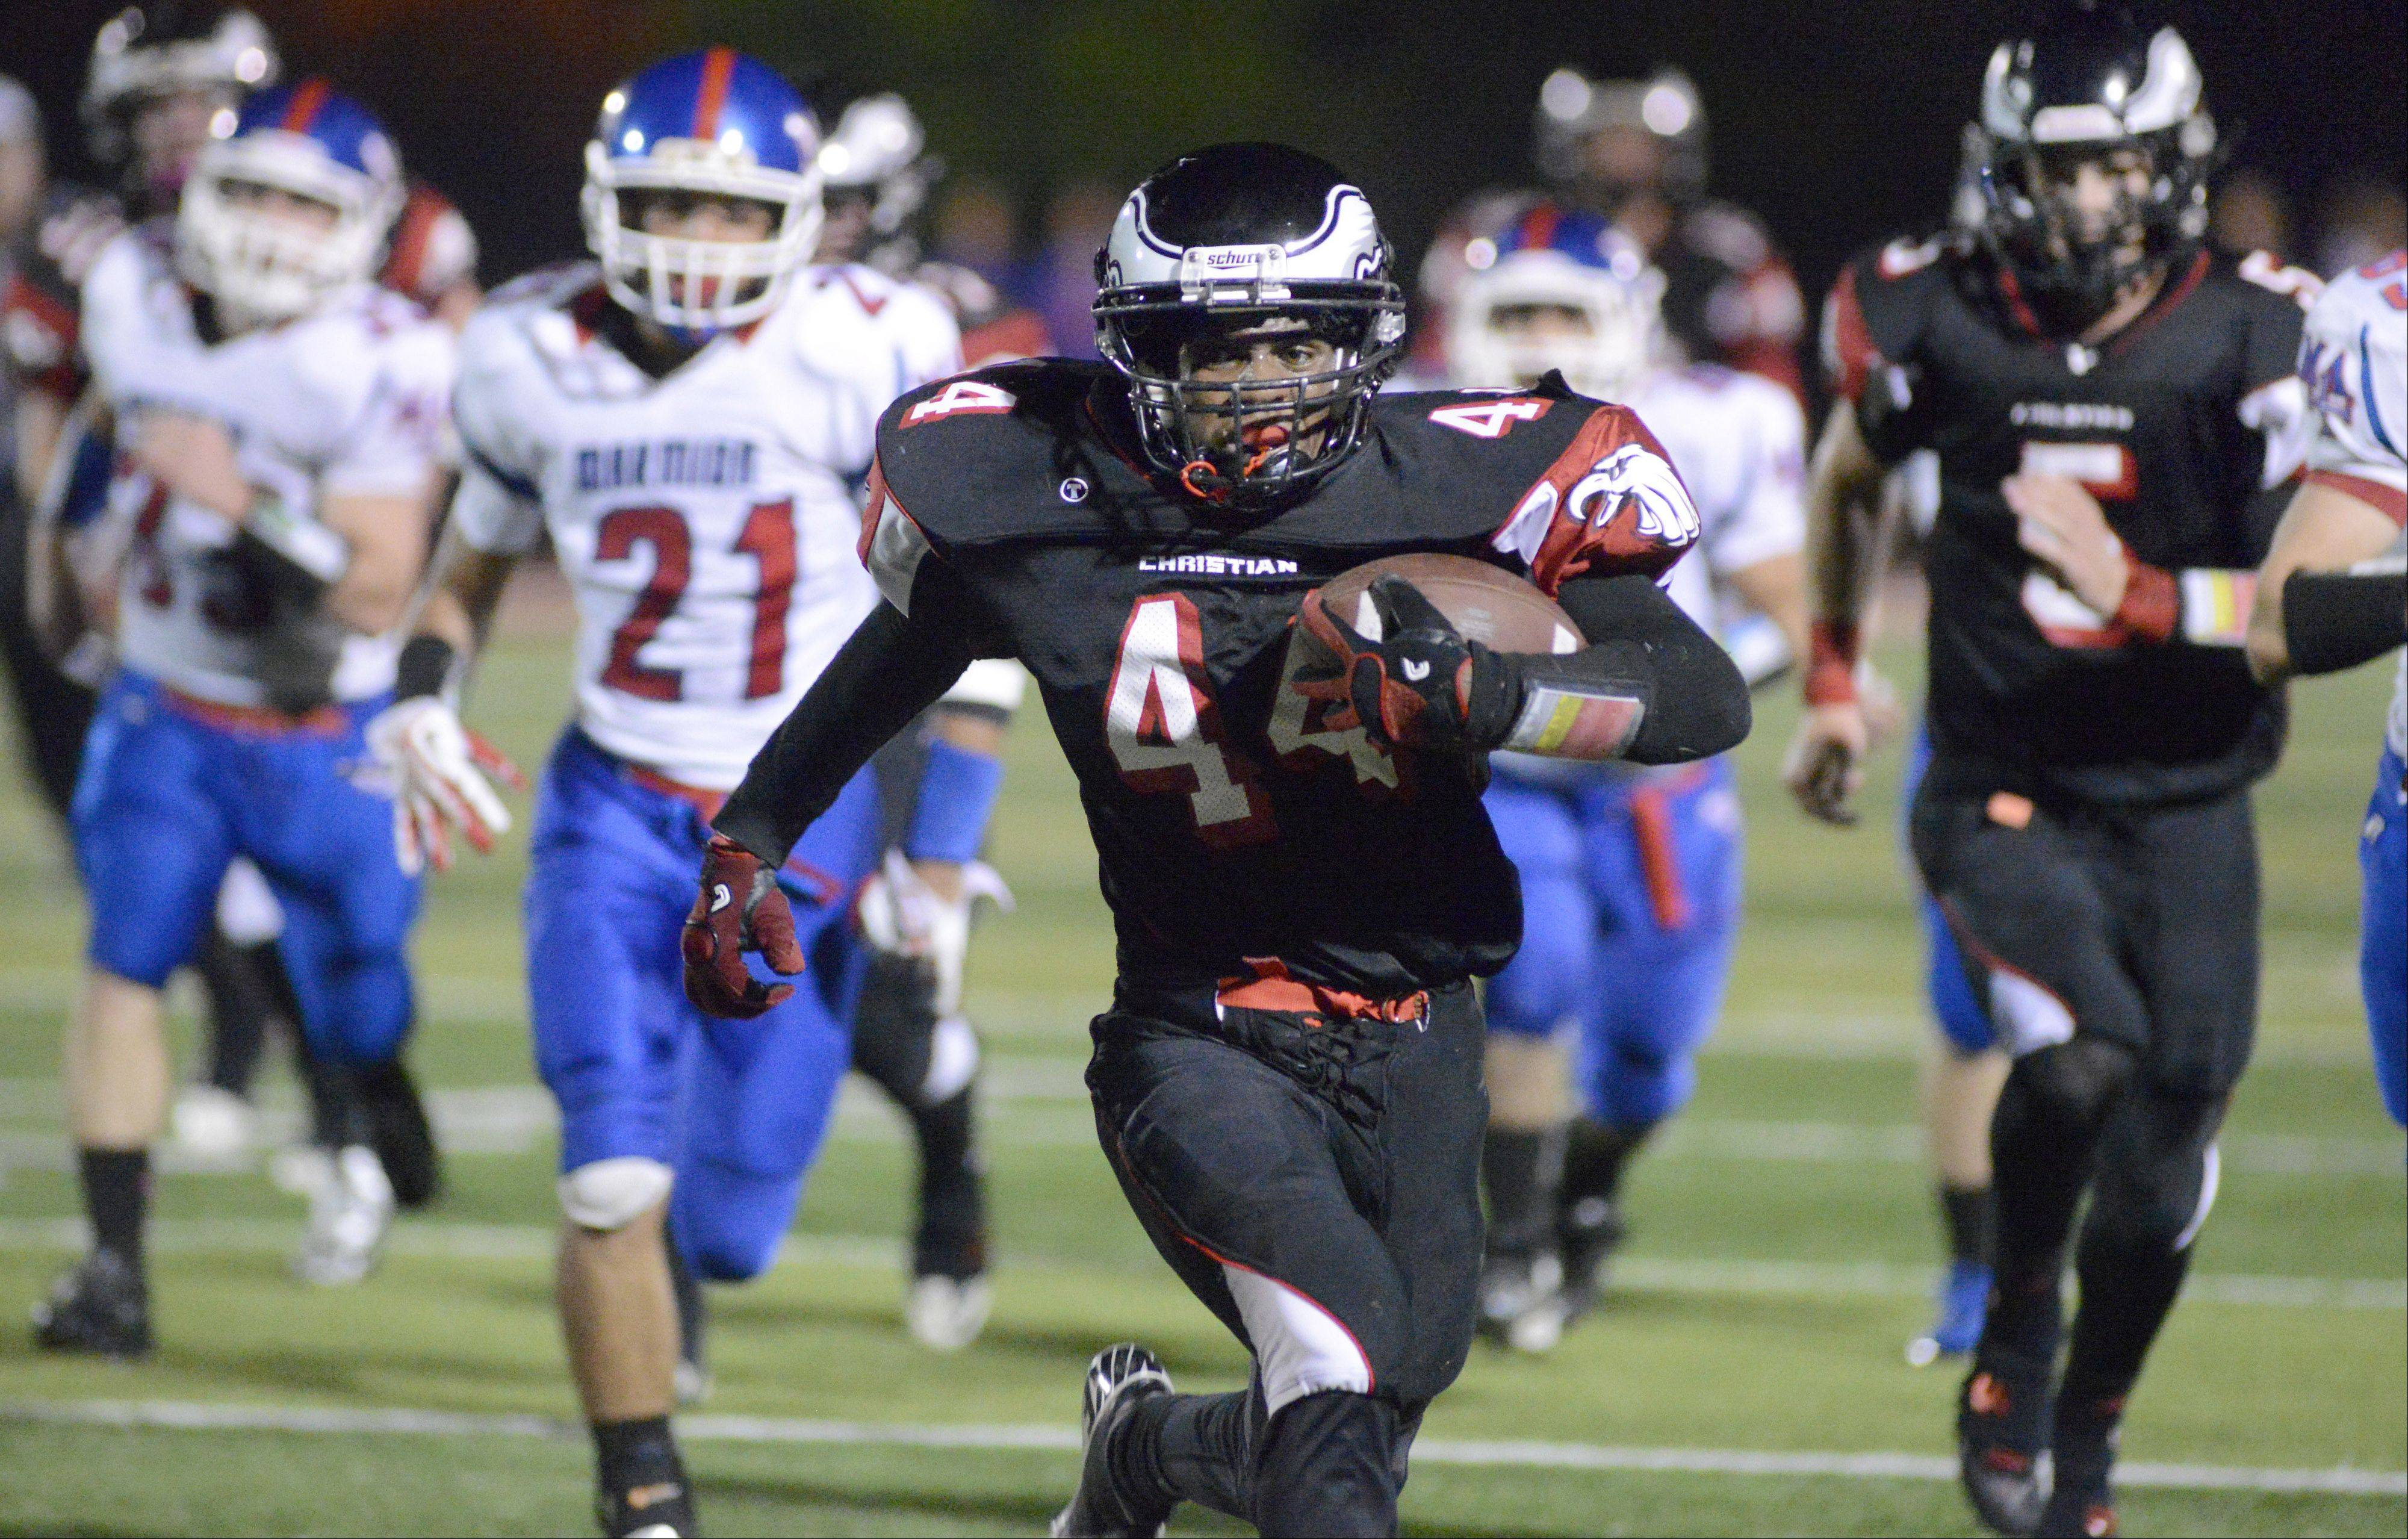 Aurora Christian's Legend Smith sprints to the end zone in the second quarter on Friday, October 4.